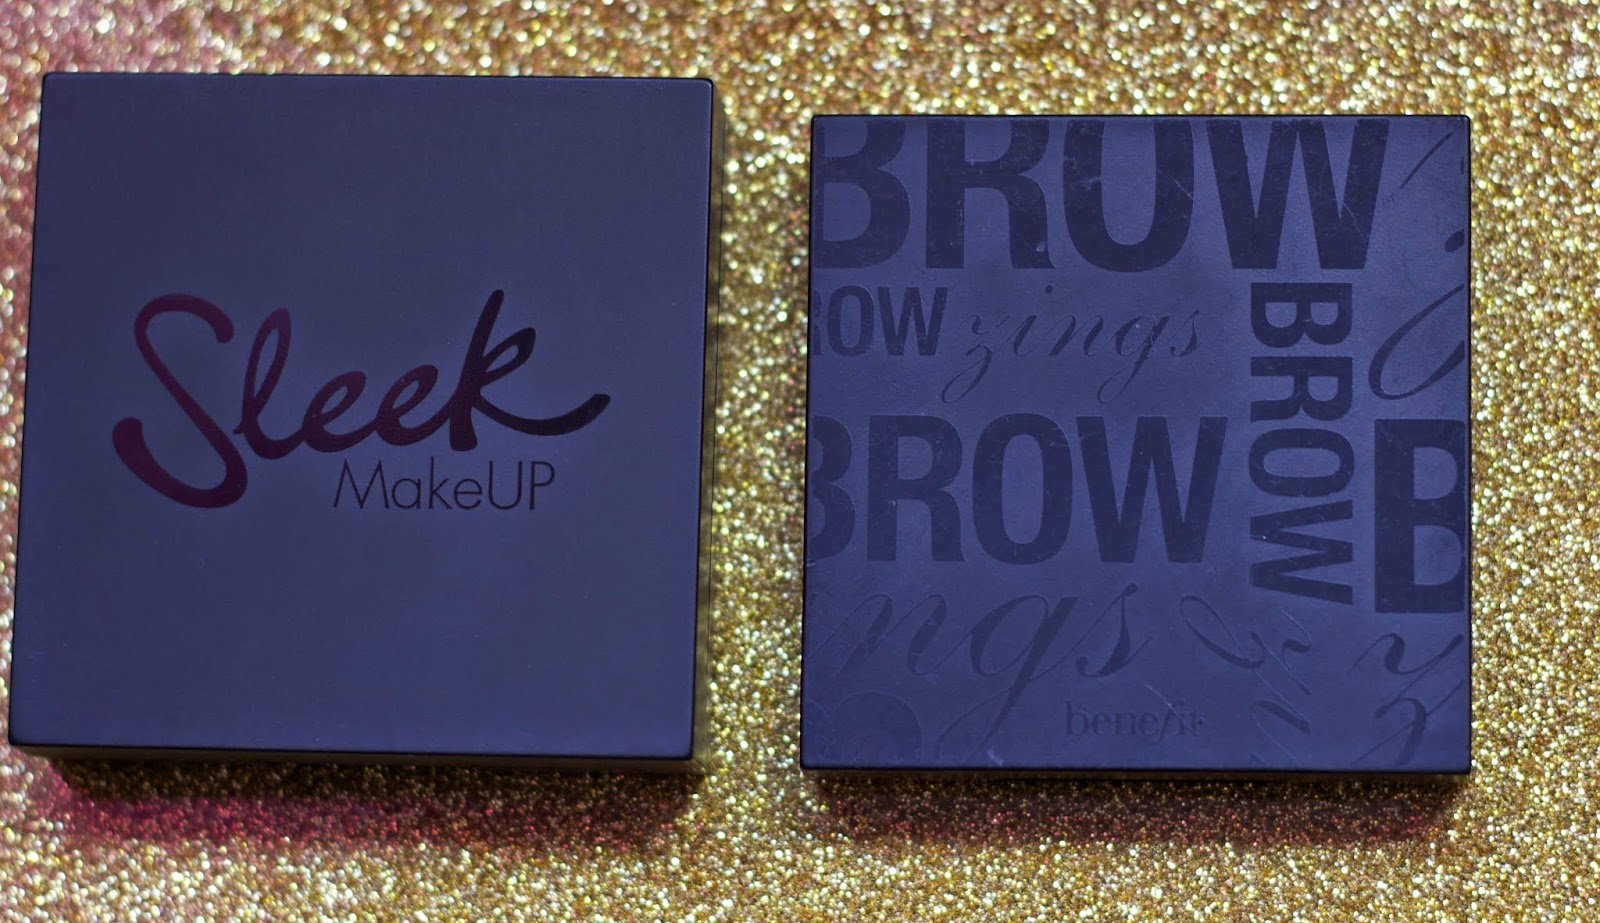 Review: Benefit Brow zings vs. Sleek Brow Palette | FiveTwoStyle